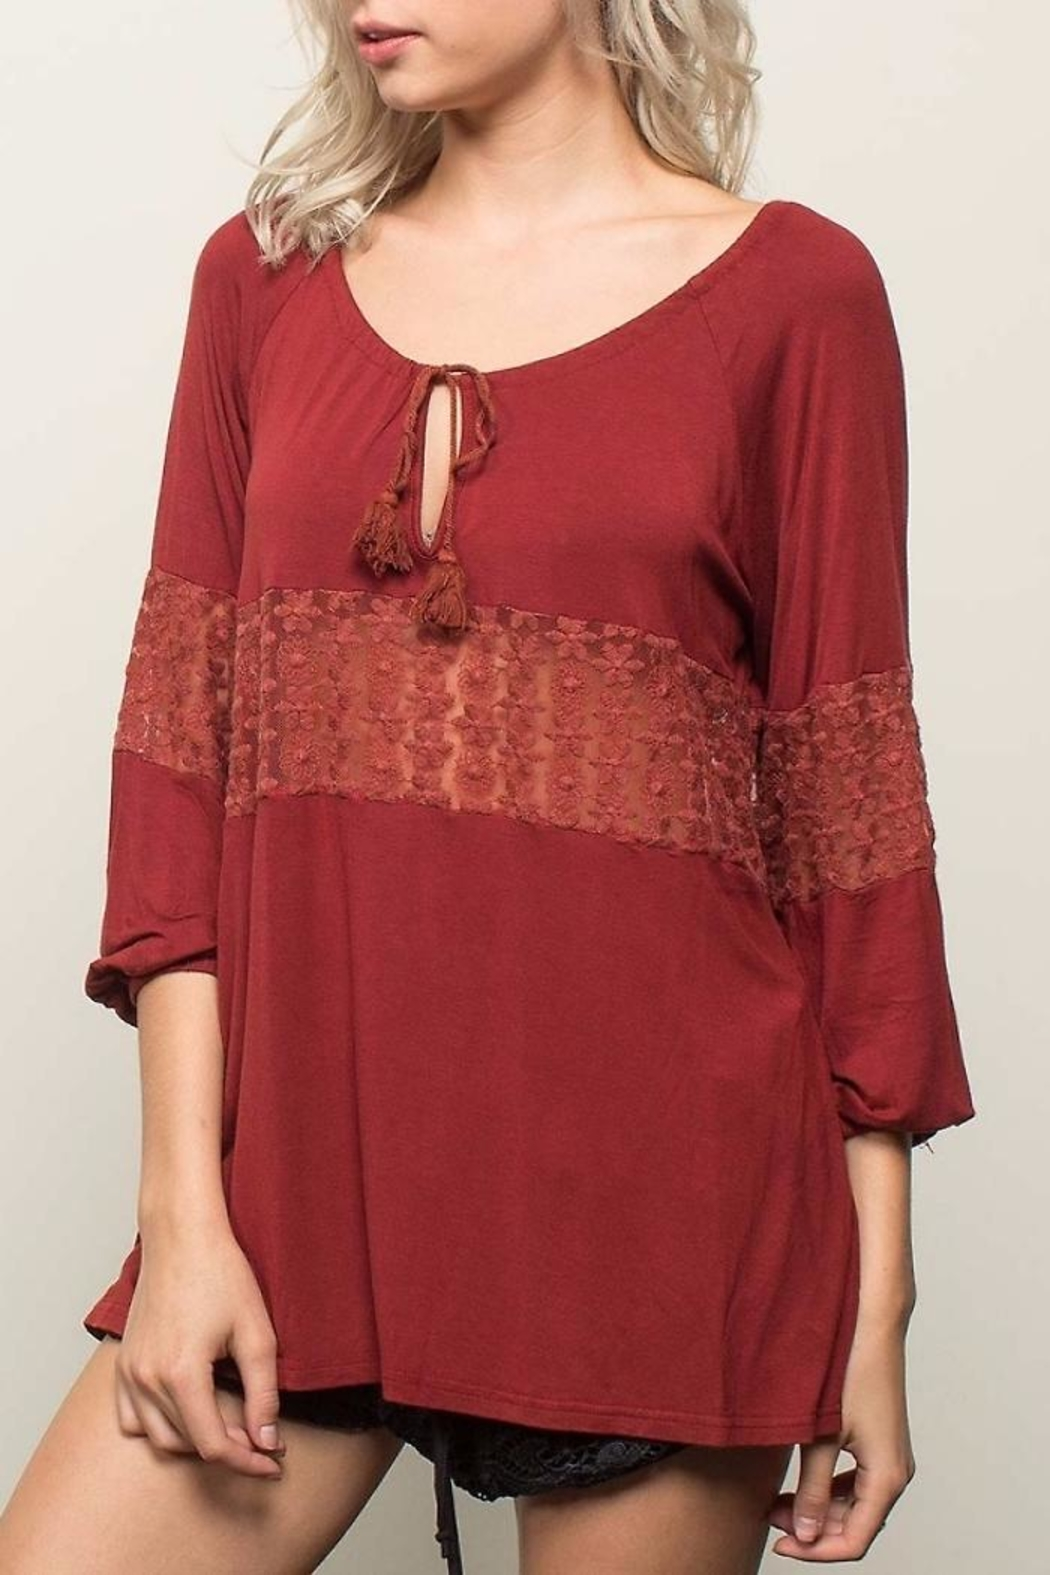 People Outfitter Retro Romance Top - Main Image